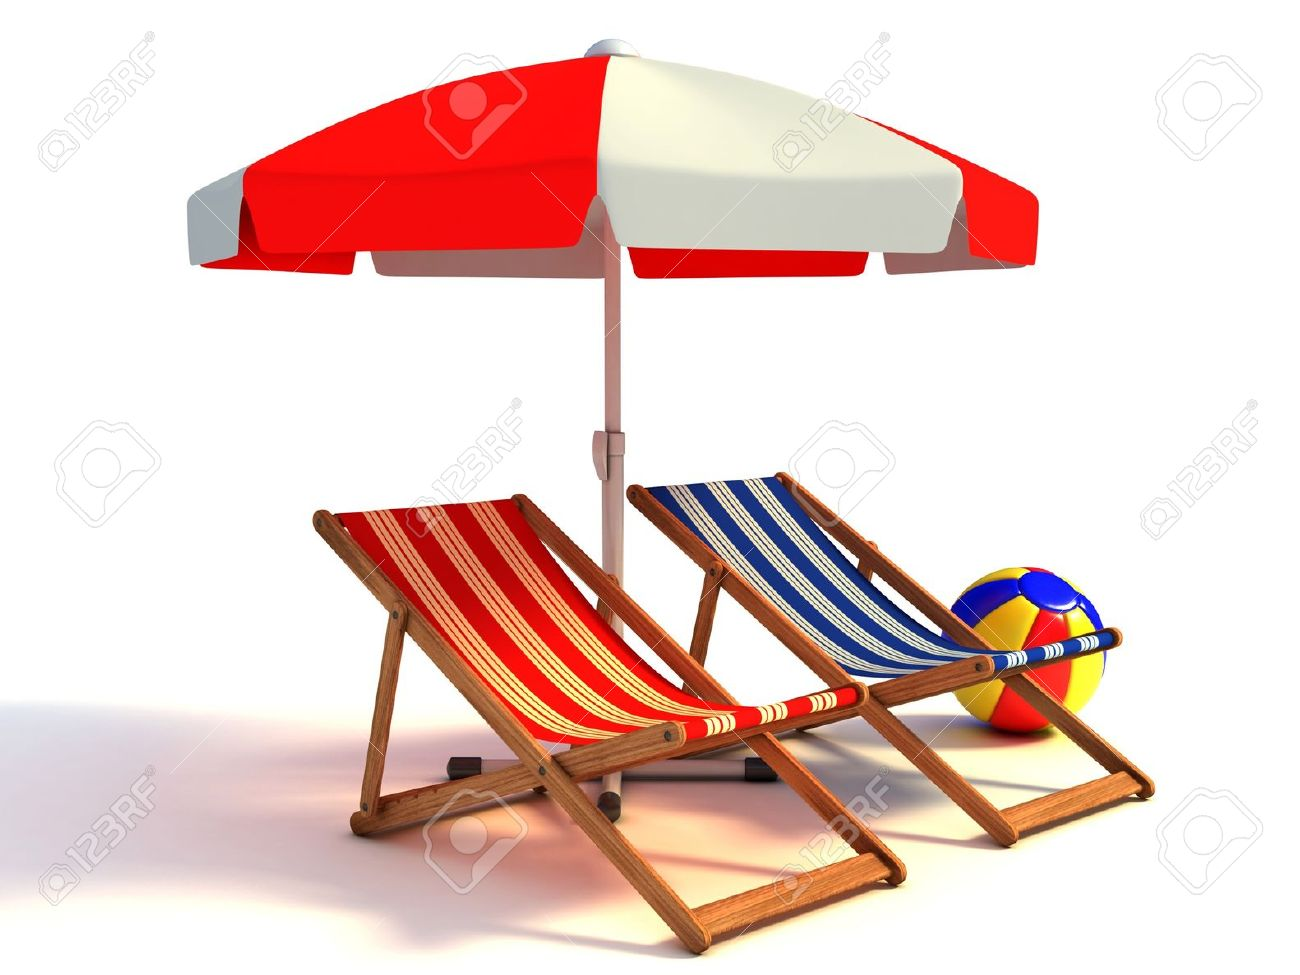 Beach umbrella and chair png - Beach Umbrella Two Beach Chairs Under Sunshade 3d Illustration Stock Photo